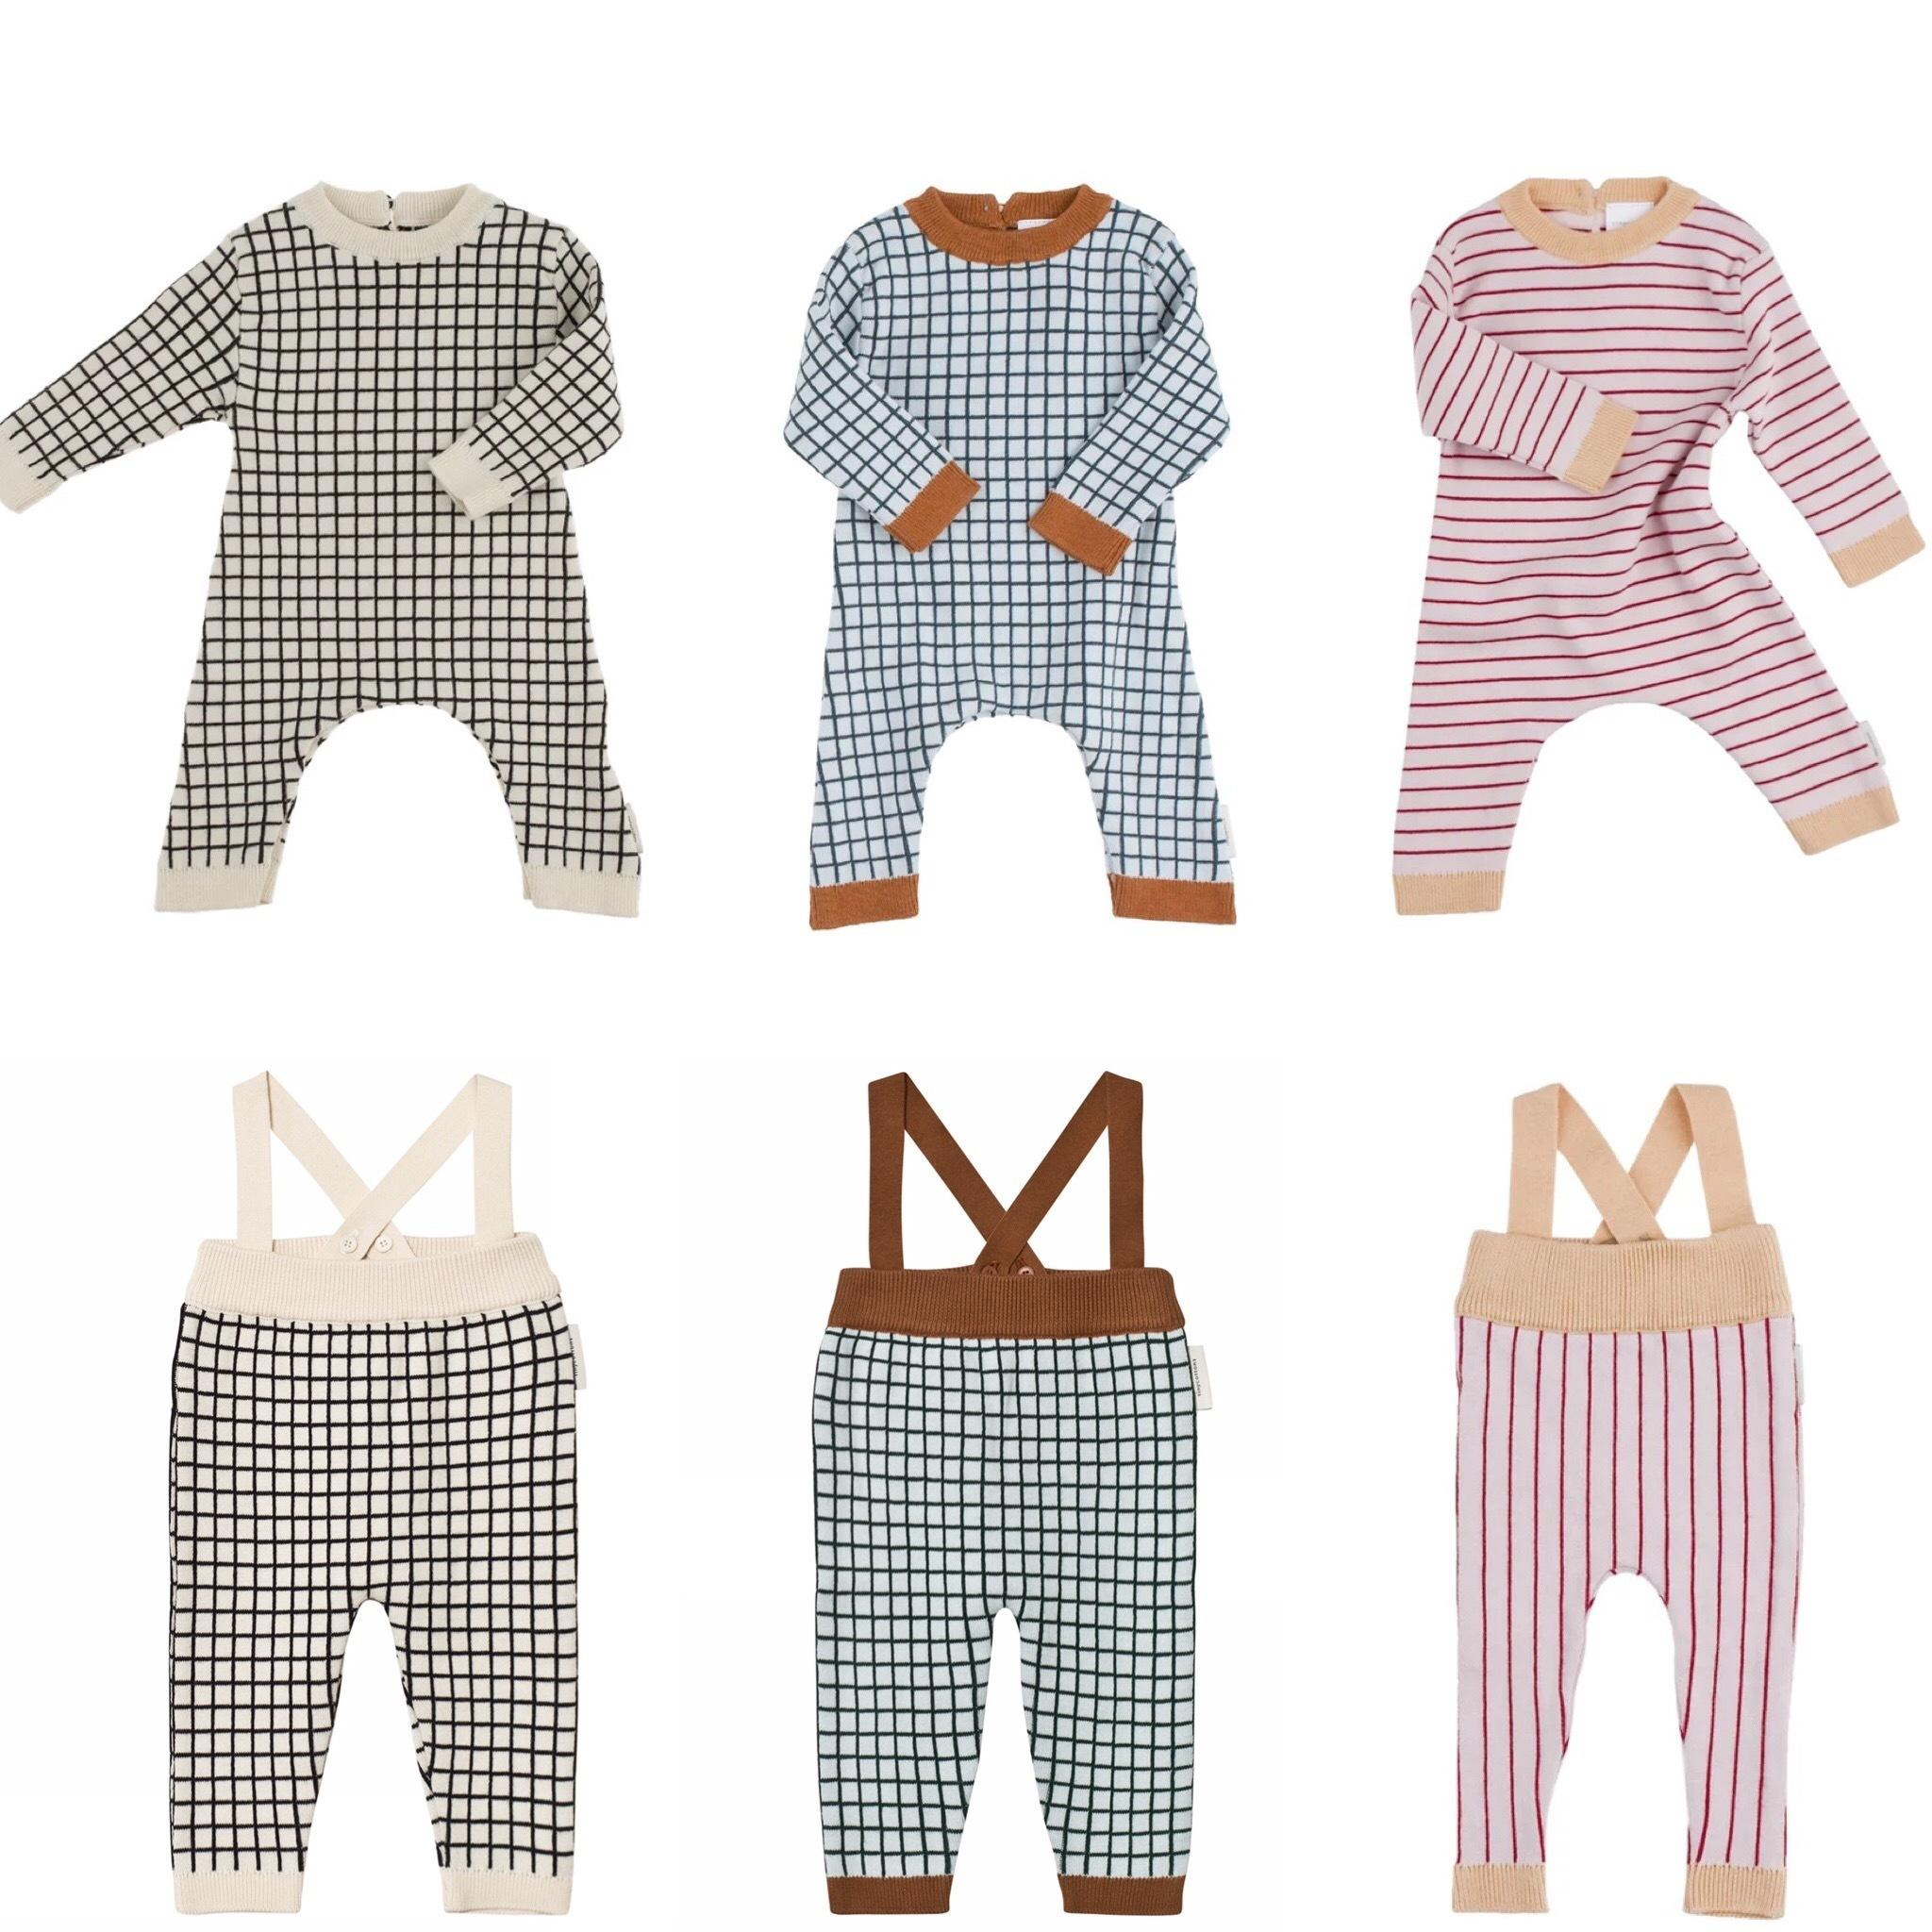 a4473cc17f4e 2019 2019 Spring Baby Rompers Boys Girls Cotton Plaid Jumpsuits Newborn Baby  Clothes Hat Overalls New Children Clothing Roupas Bebes From Usefully20